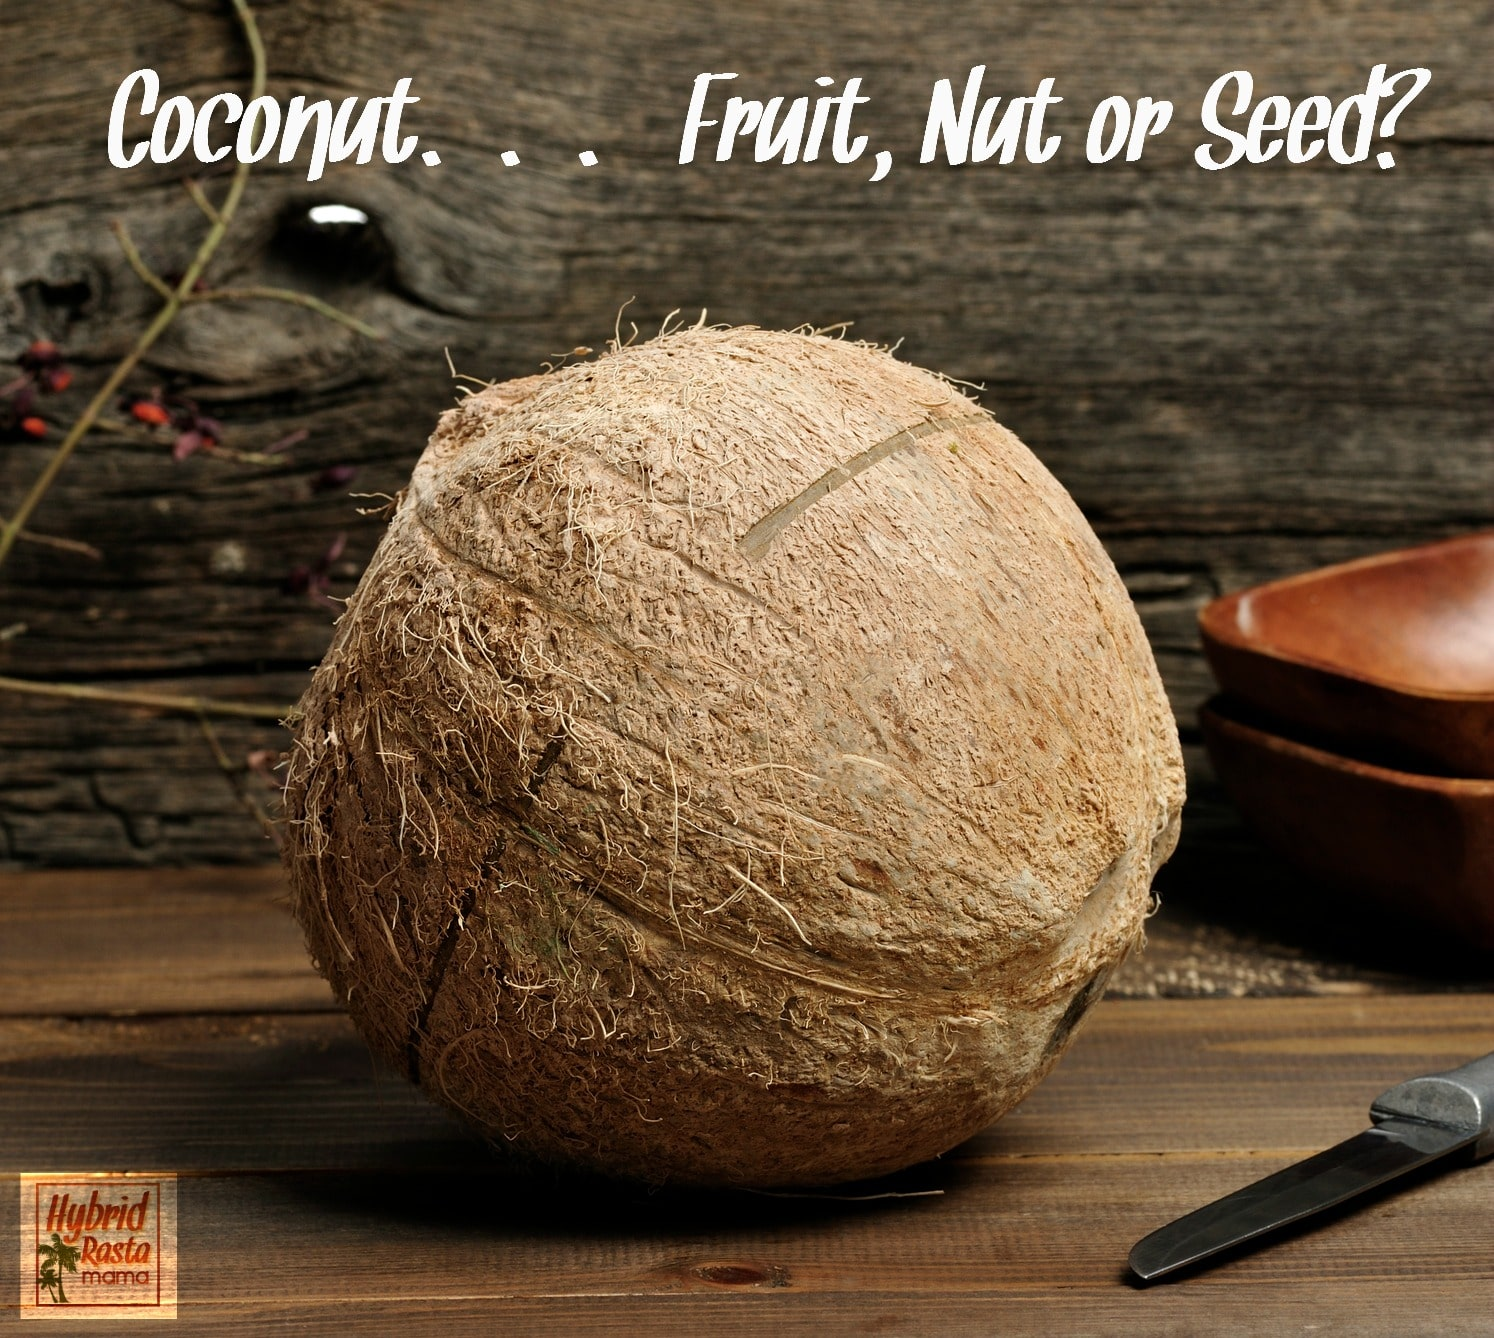 The Coconut – Fruit, Nut, or Seed?